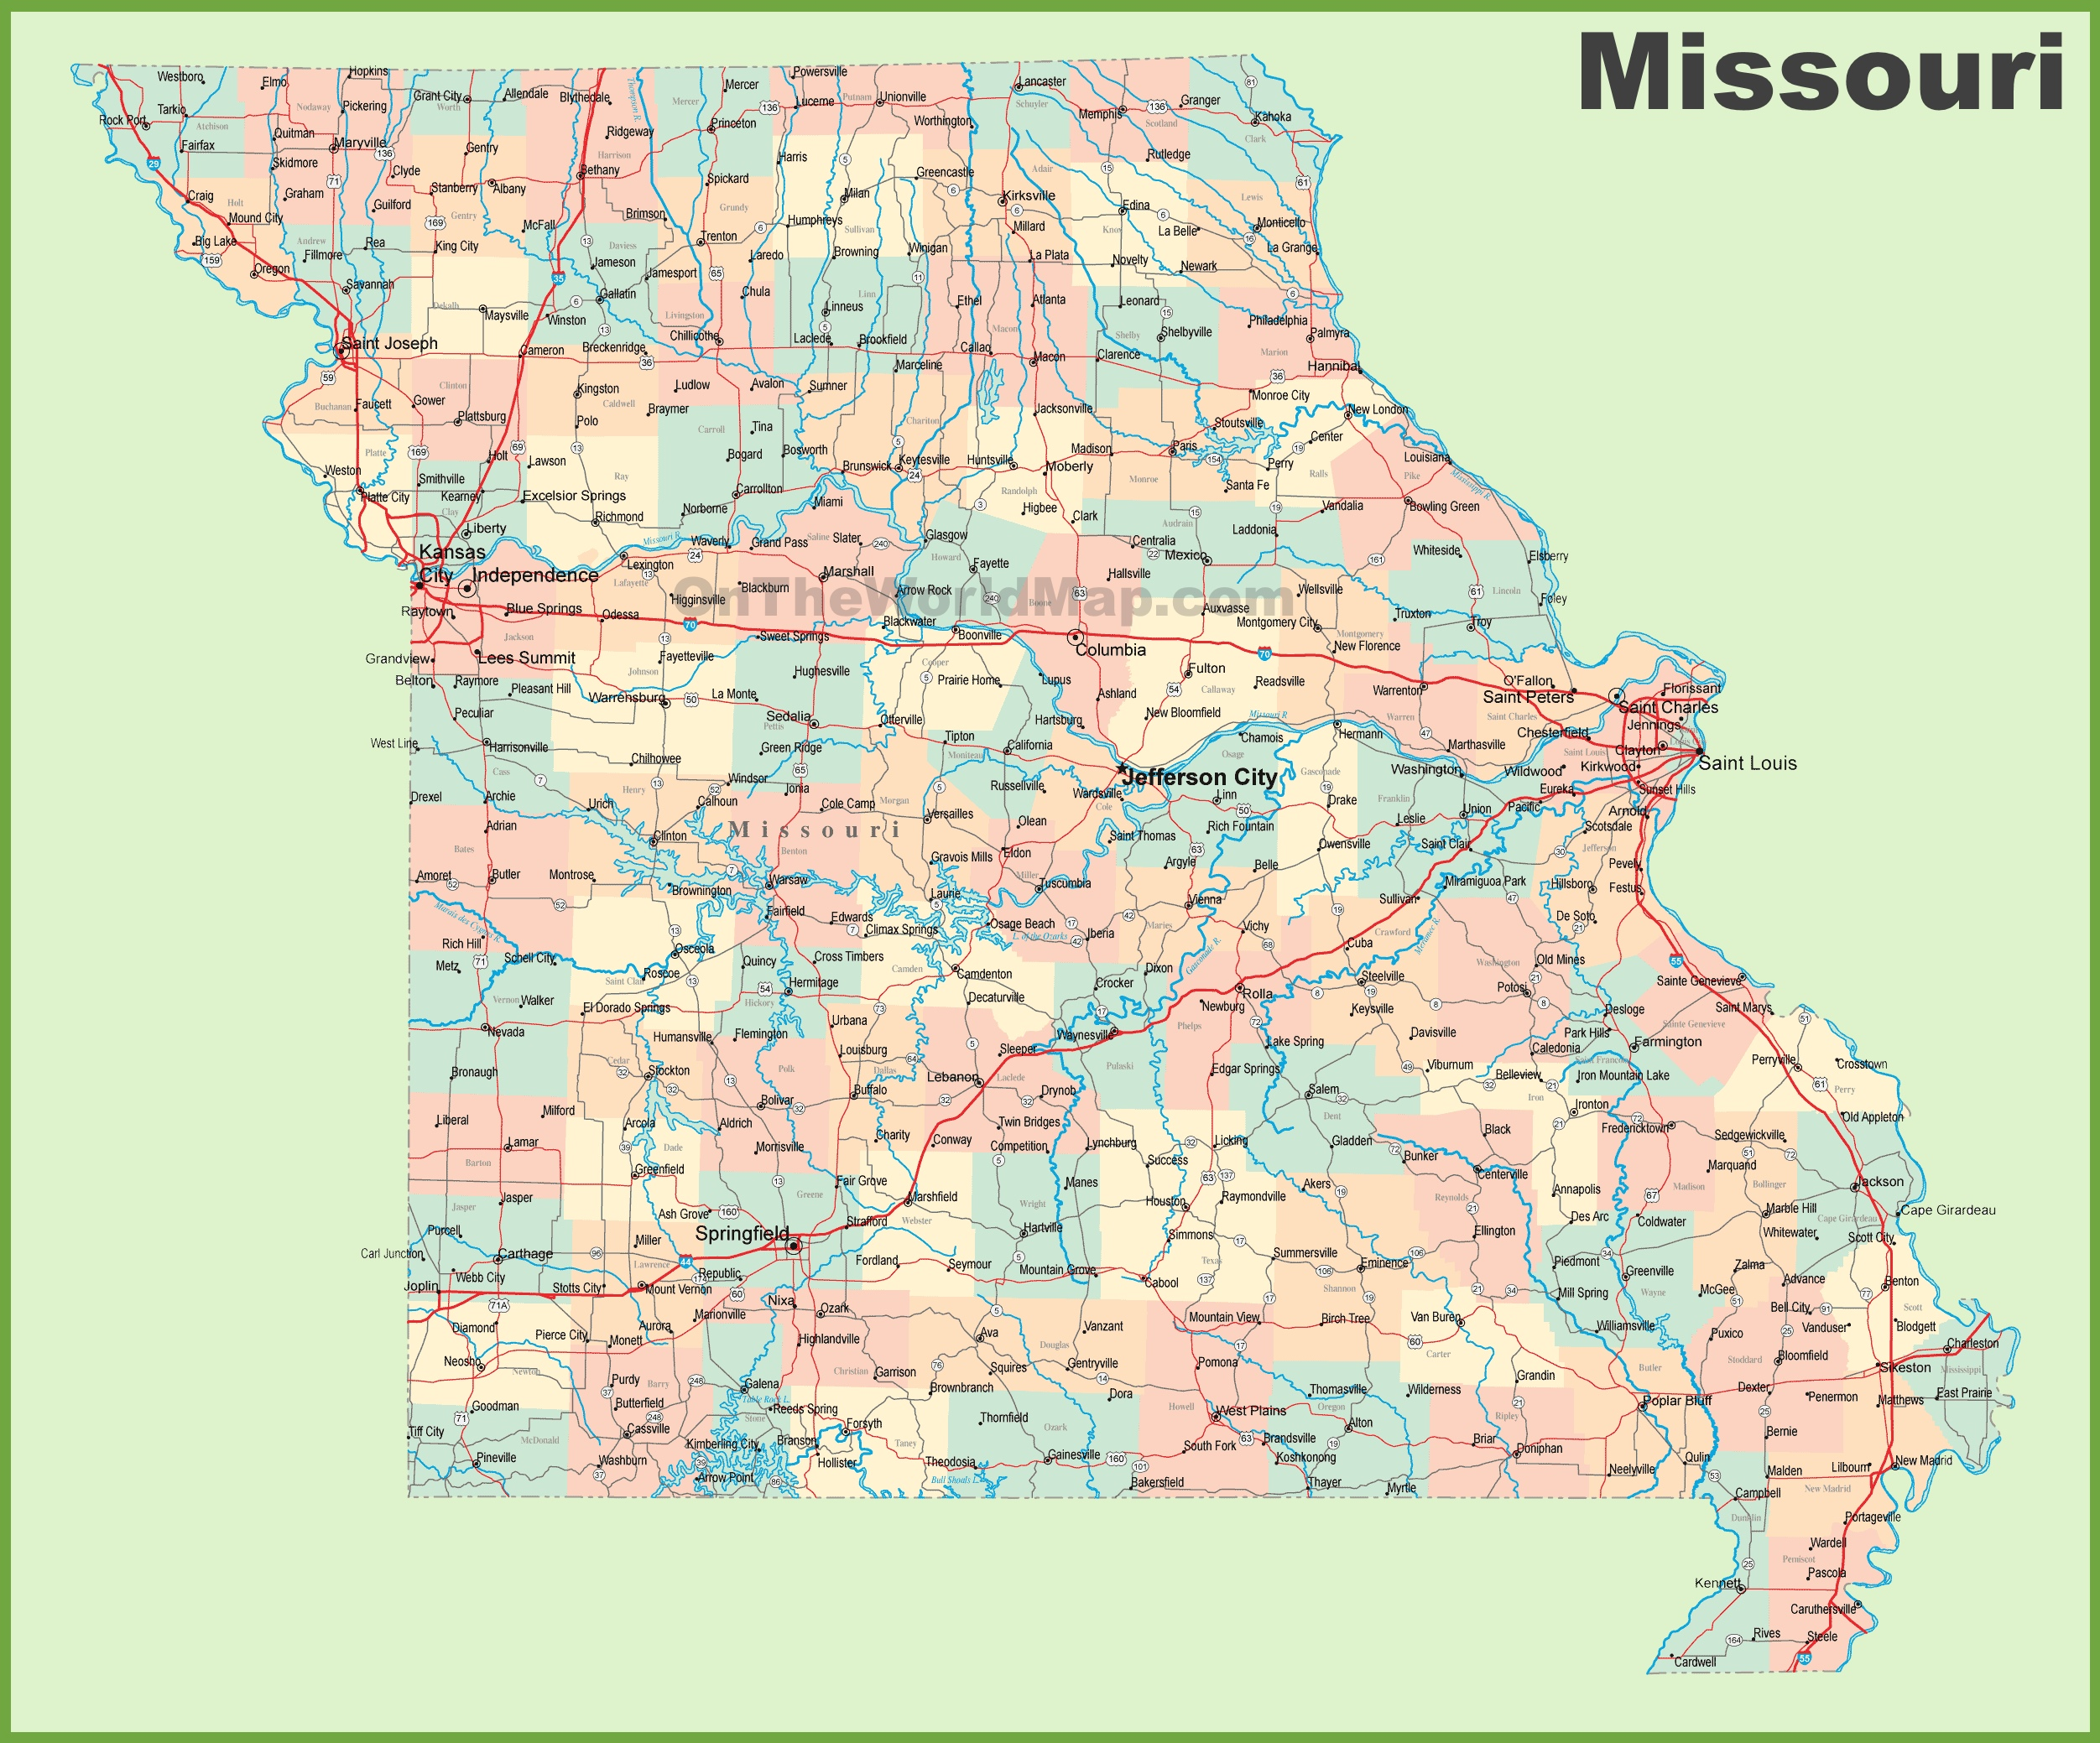 Missouri State Maps USA Maps Of Missouri MO - Missouri state map with cities